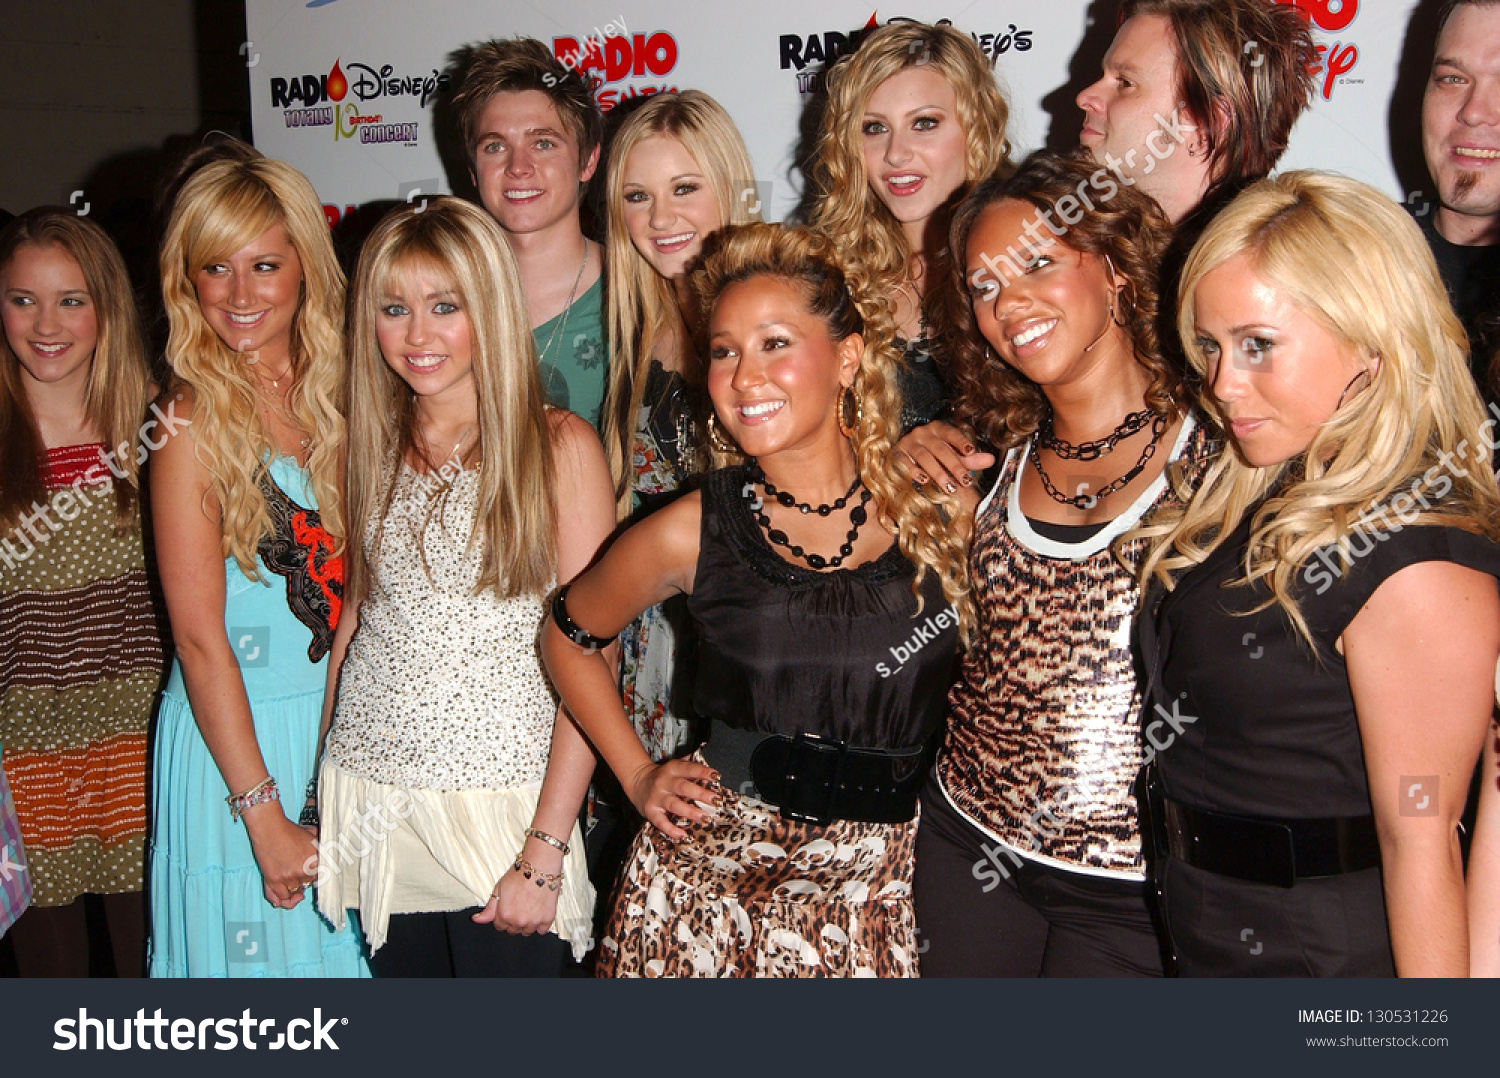 The best: jesse mccartney and ashley tisdale dating